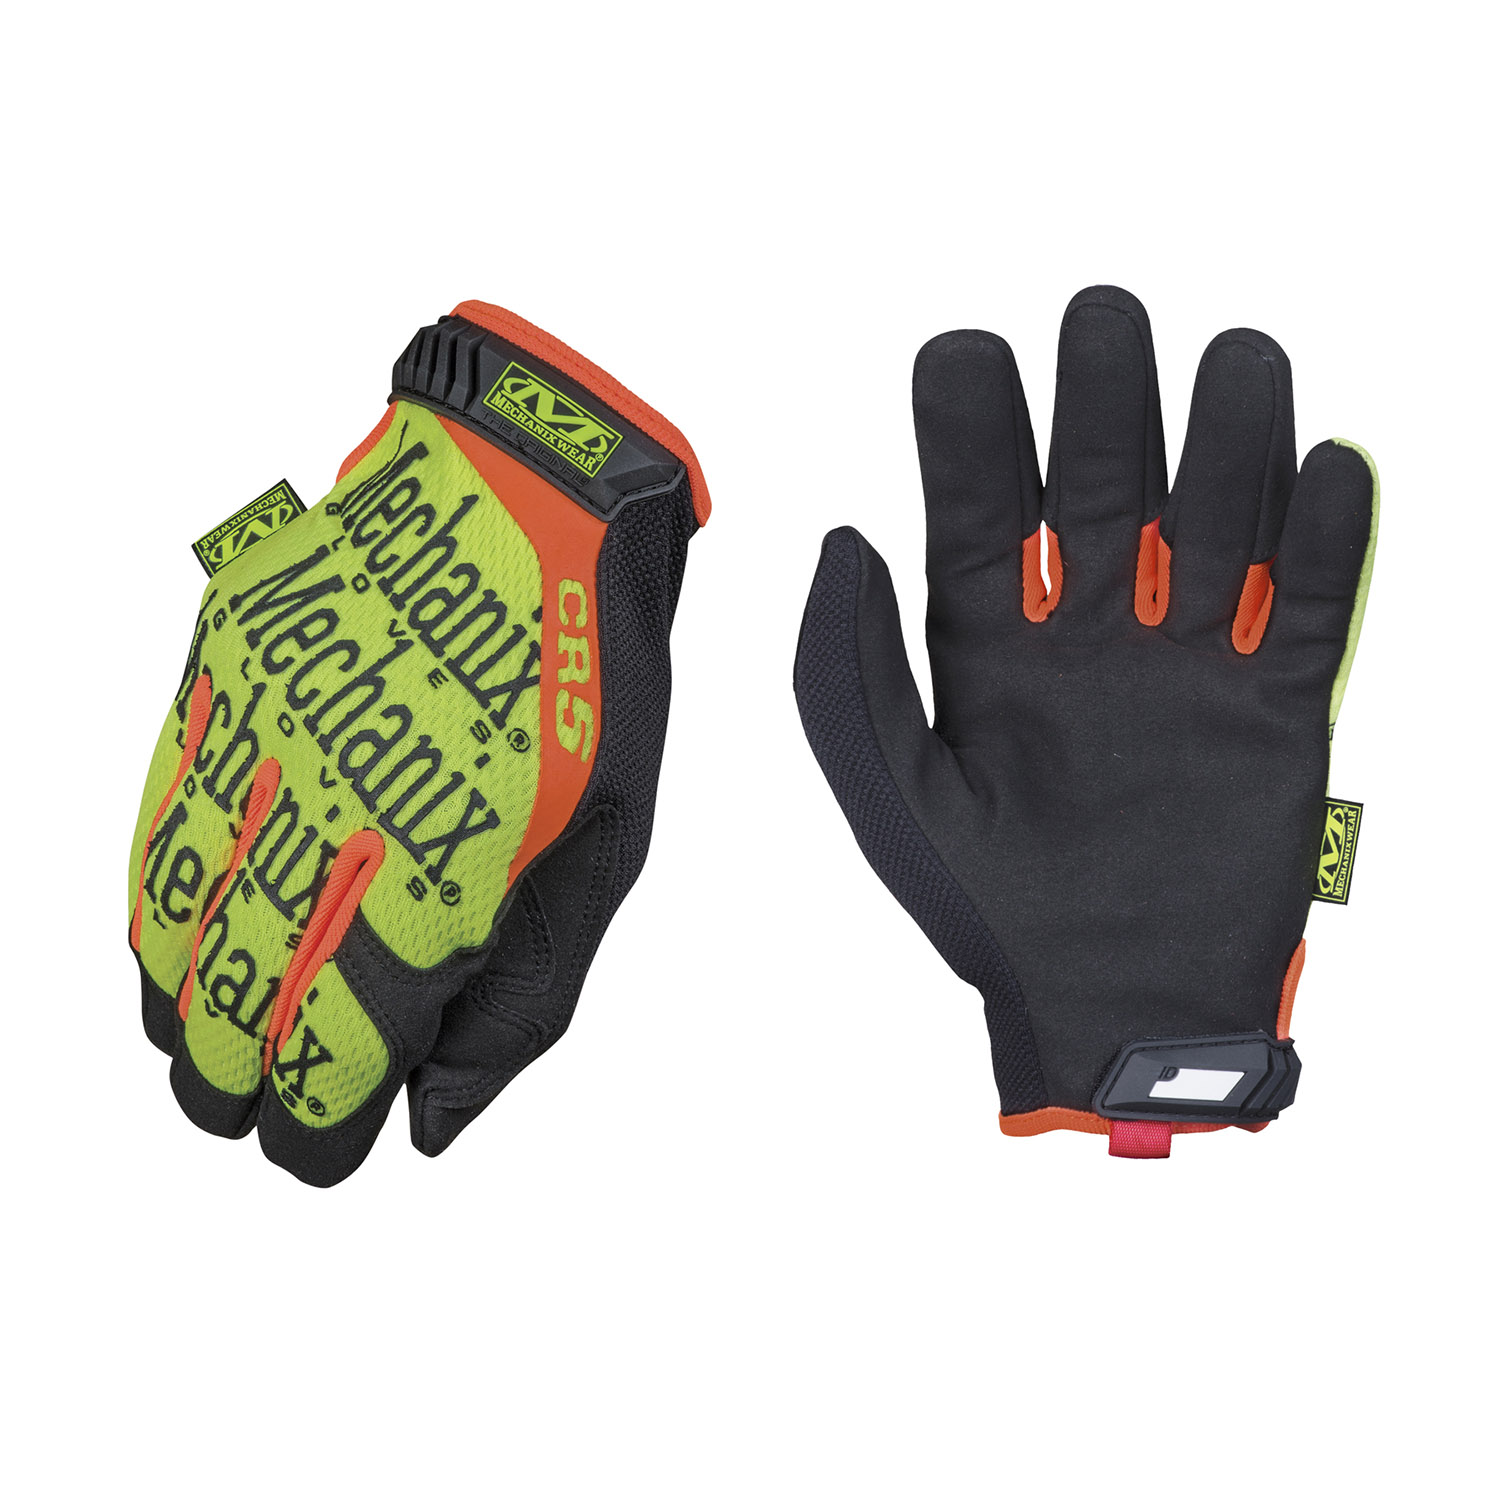 Mechanix Wear Original CR5 Gloves